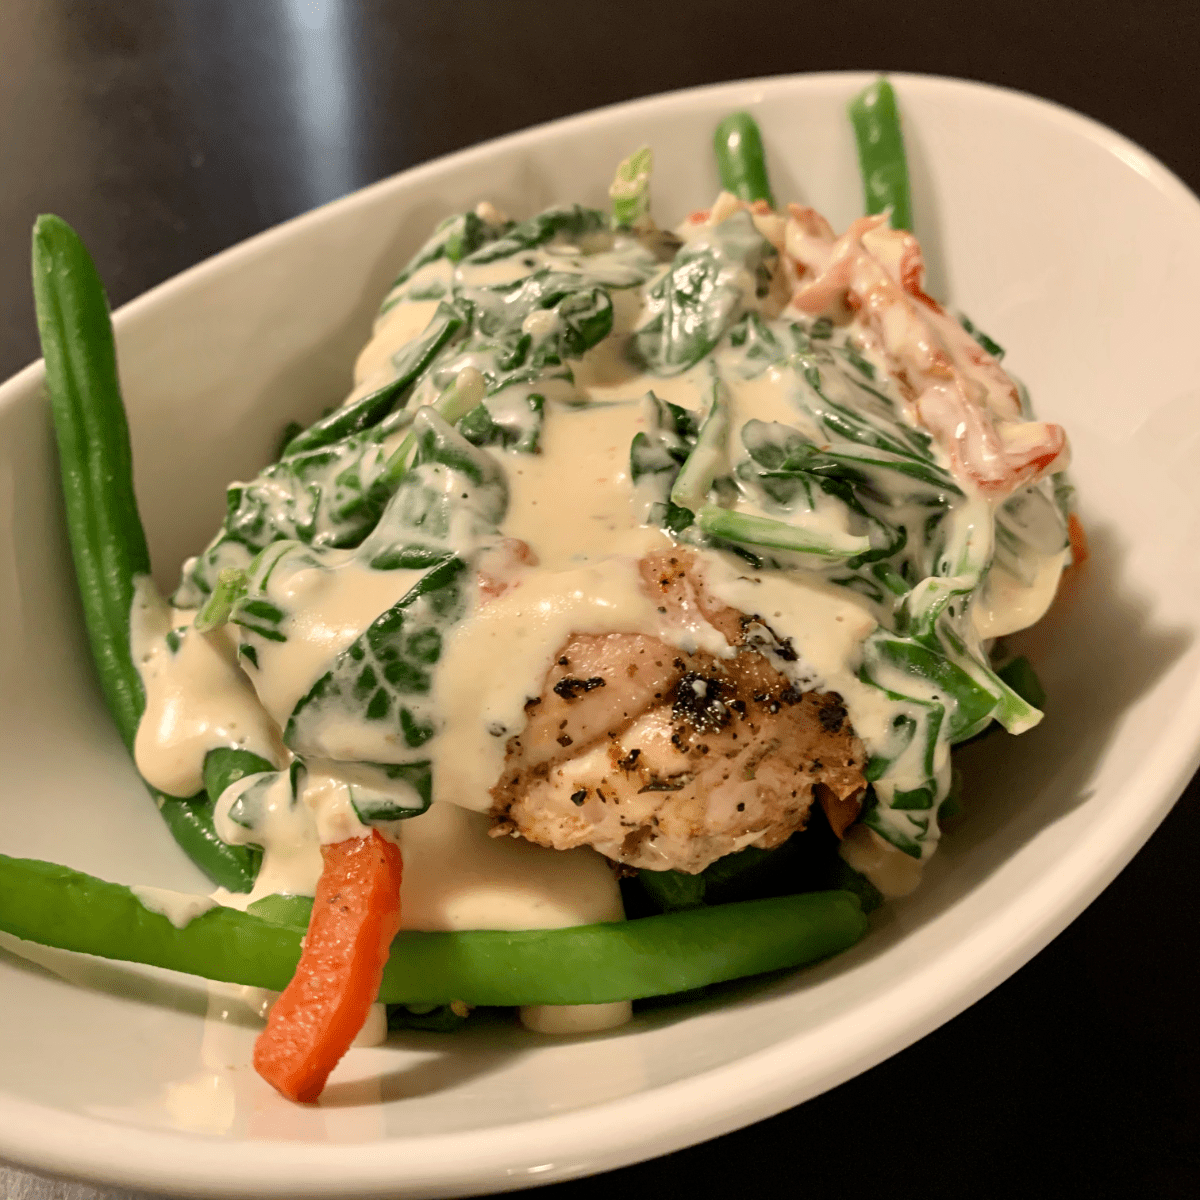 tuscan chicken with green beans serves 1 microwave and oven safe container frozen meals all natural low carb keto soy free gluten free corn free grain free sugar free market wagon